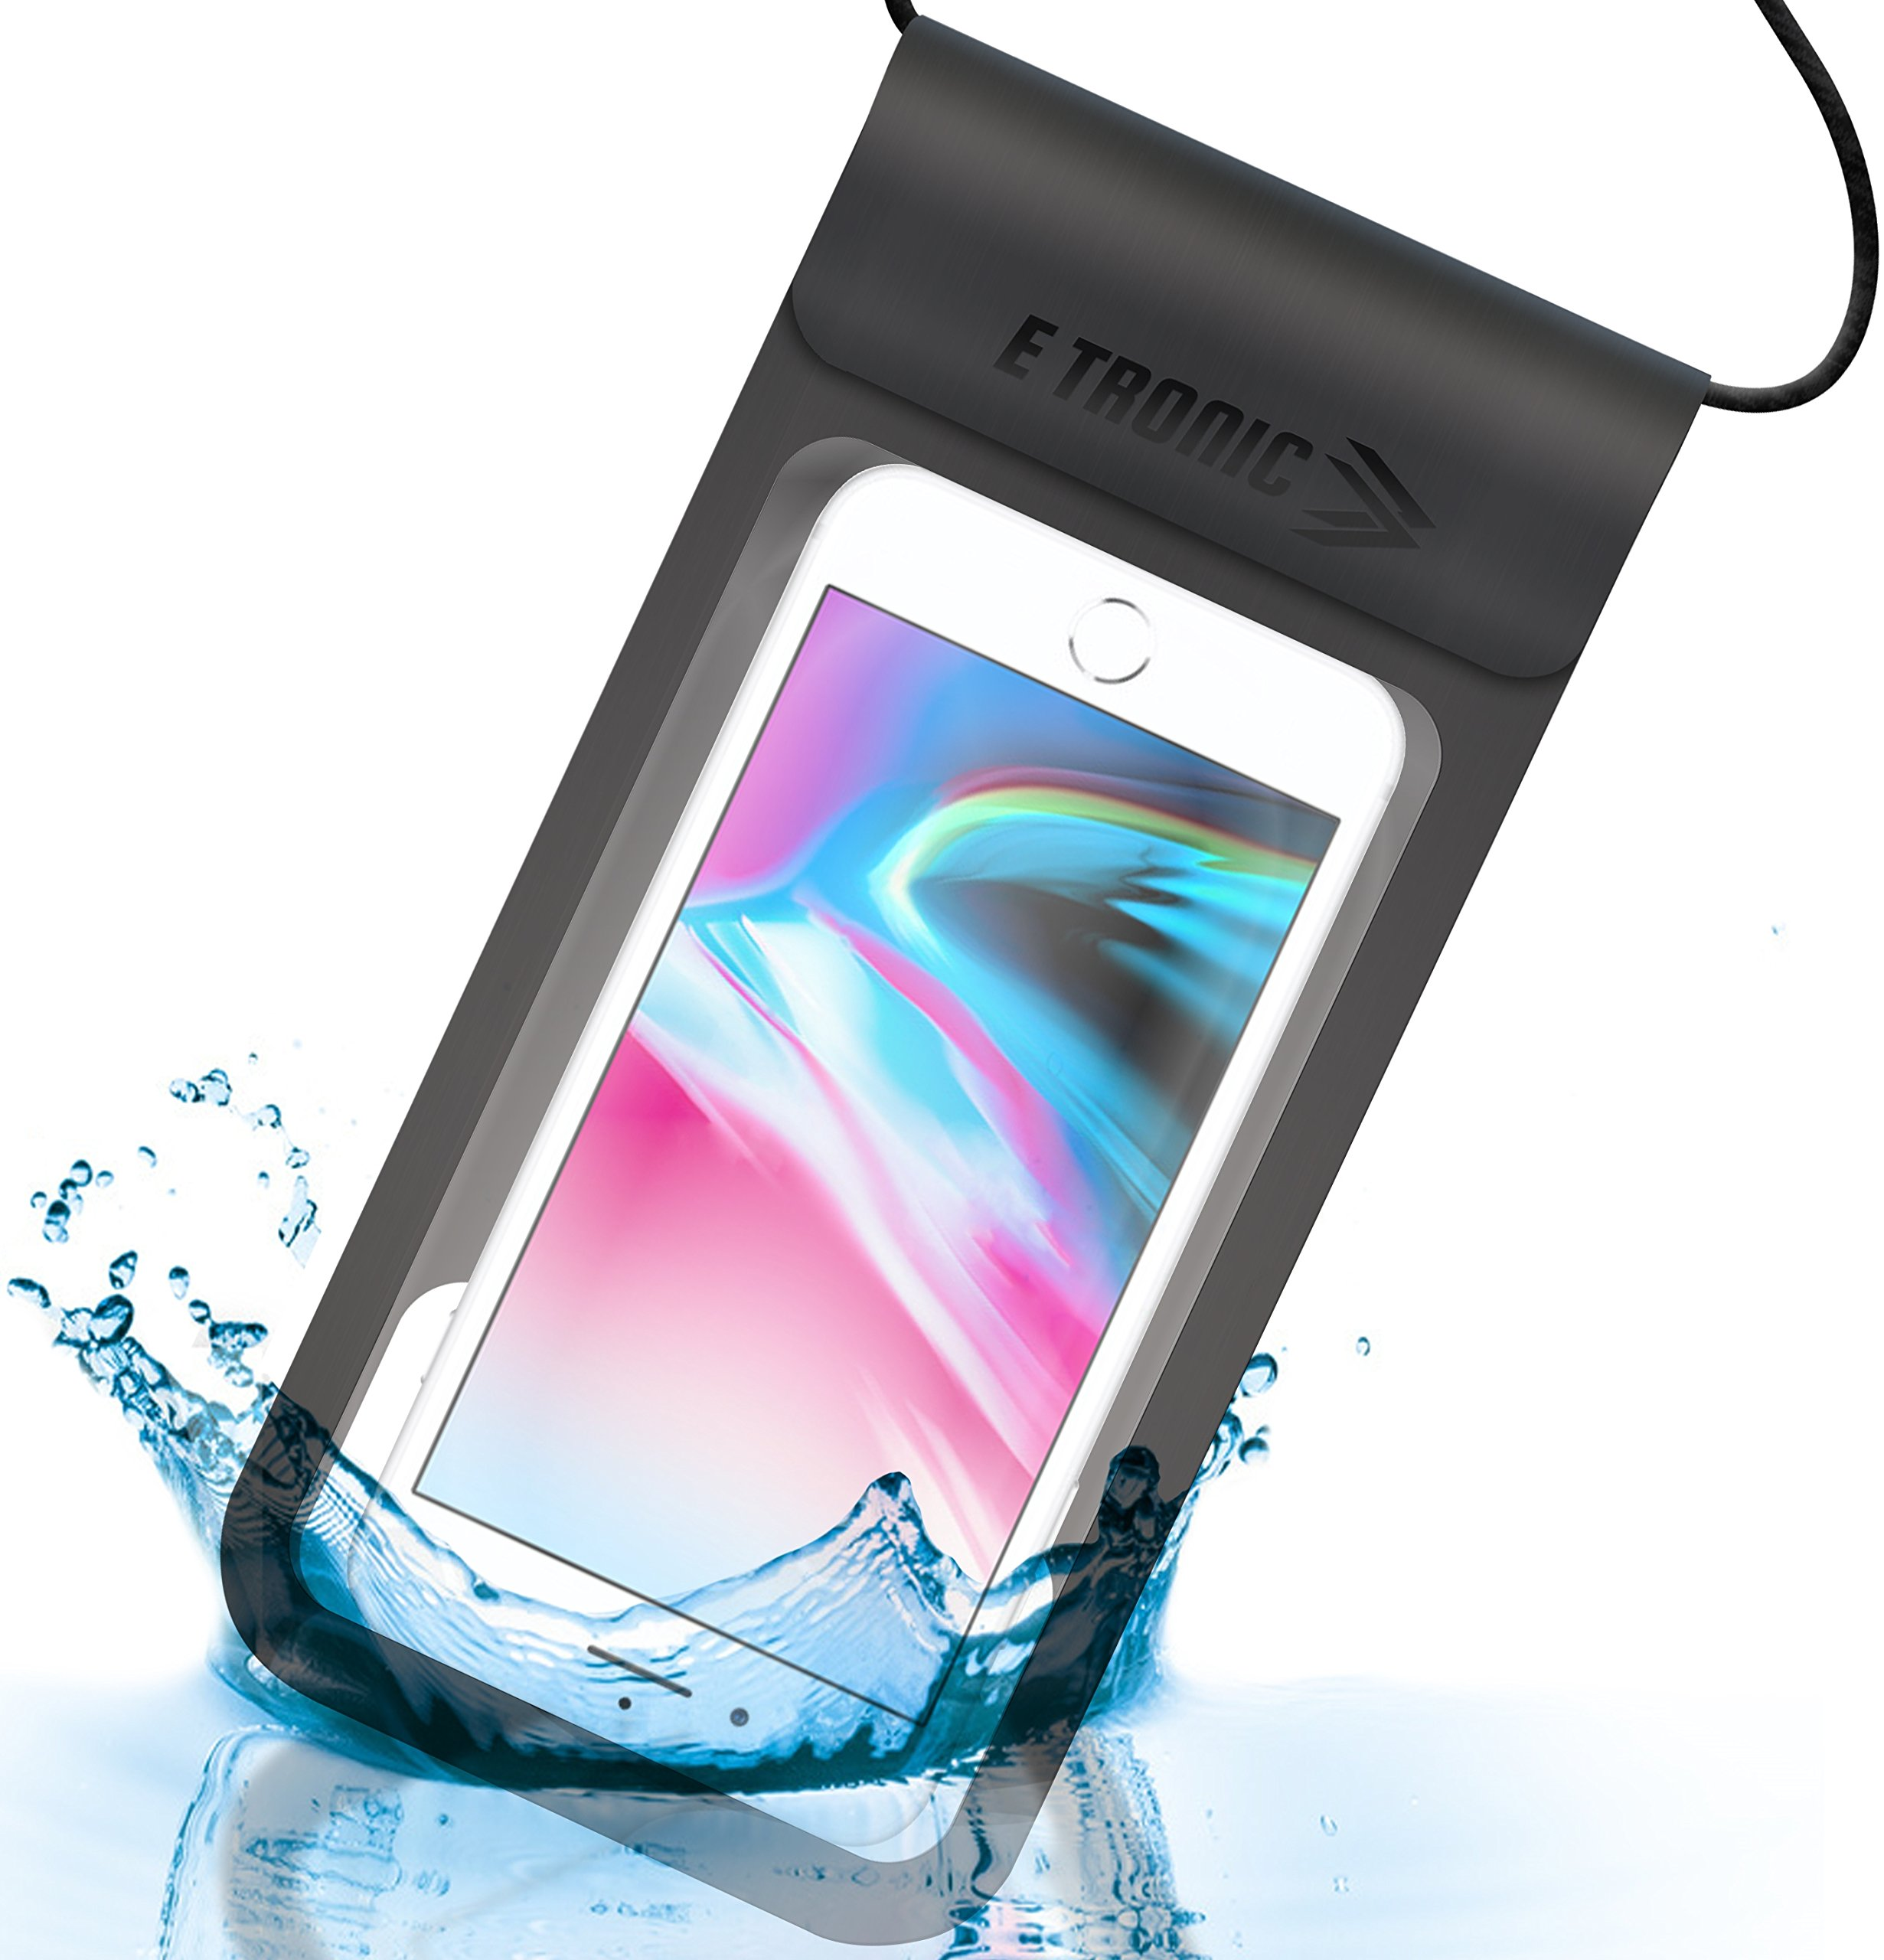 Waterproof Phone Case: Best UNIVERSAL Cellphone Dry Bag Water Proof Pouch. Clear Cover Underwater Cases Holder Bags for All Cell Phones. iPhone Plus X 8 7 6 6S & Galaxy S9 S8 S7 S6 & Google Pixel etc